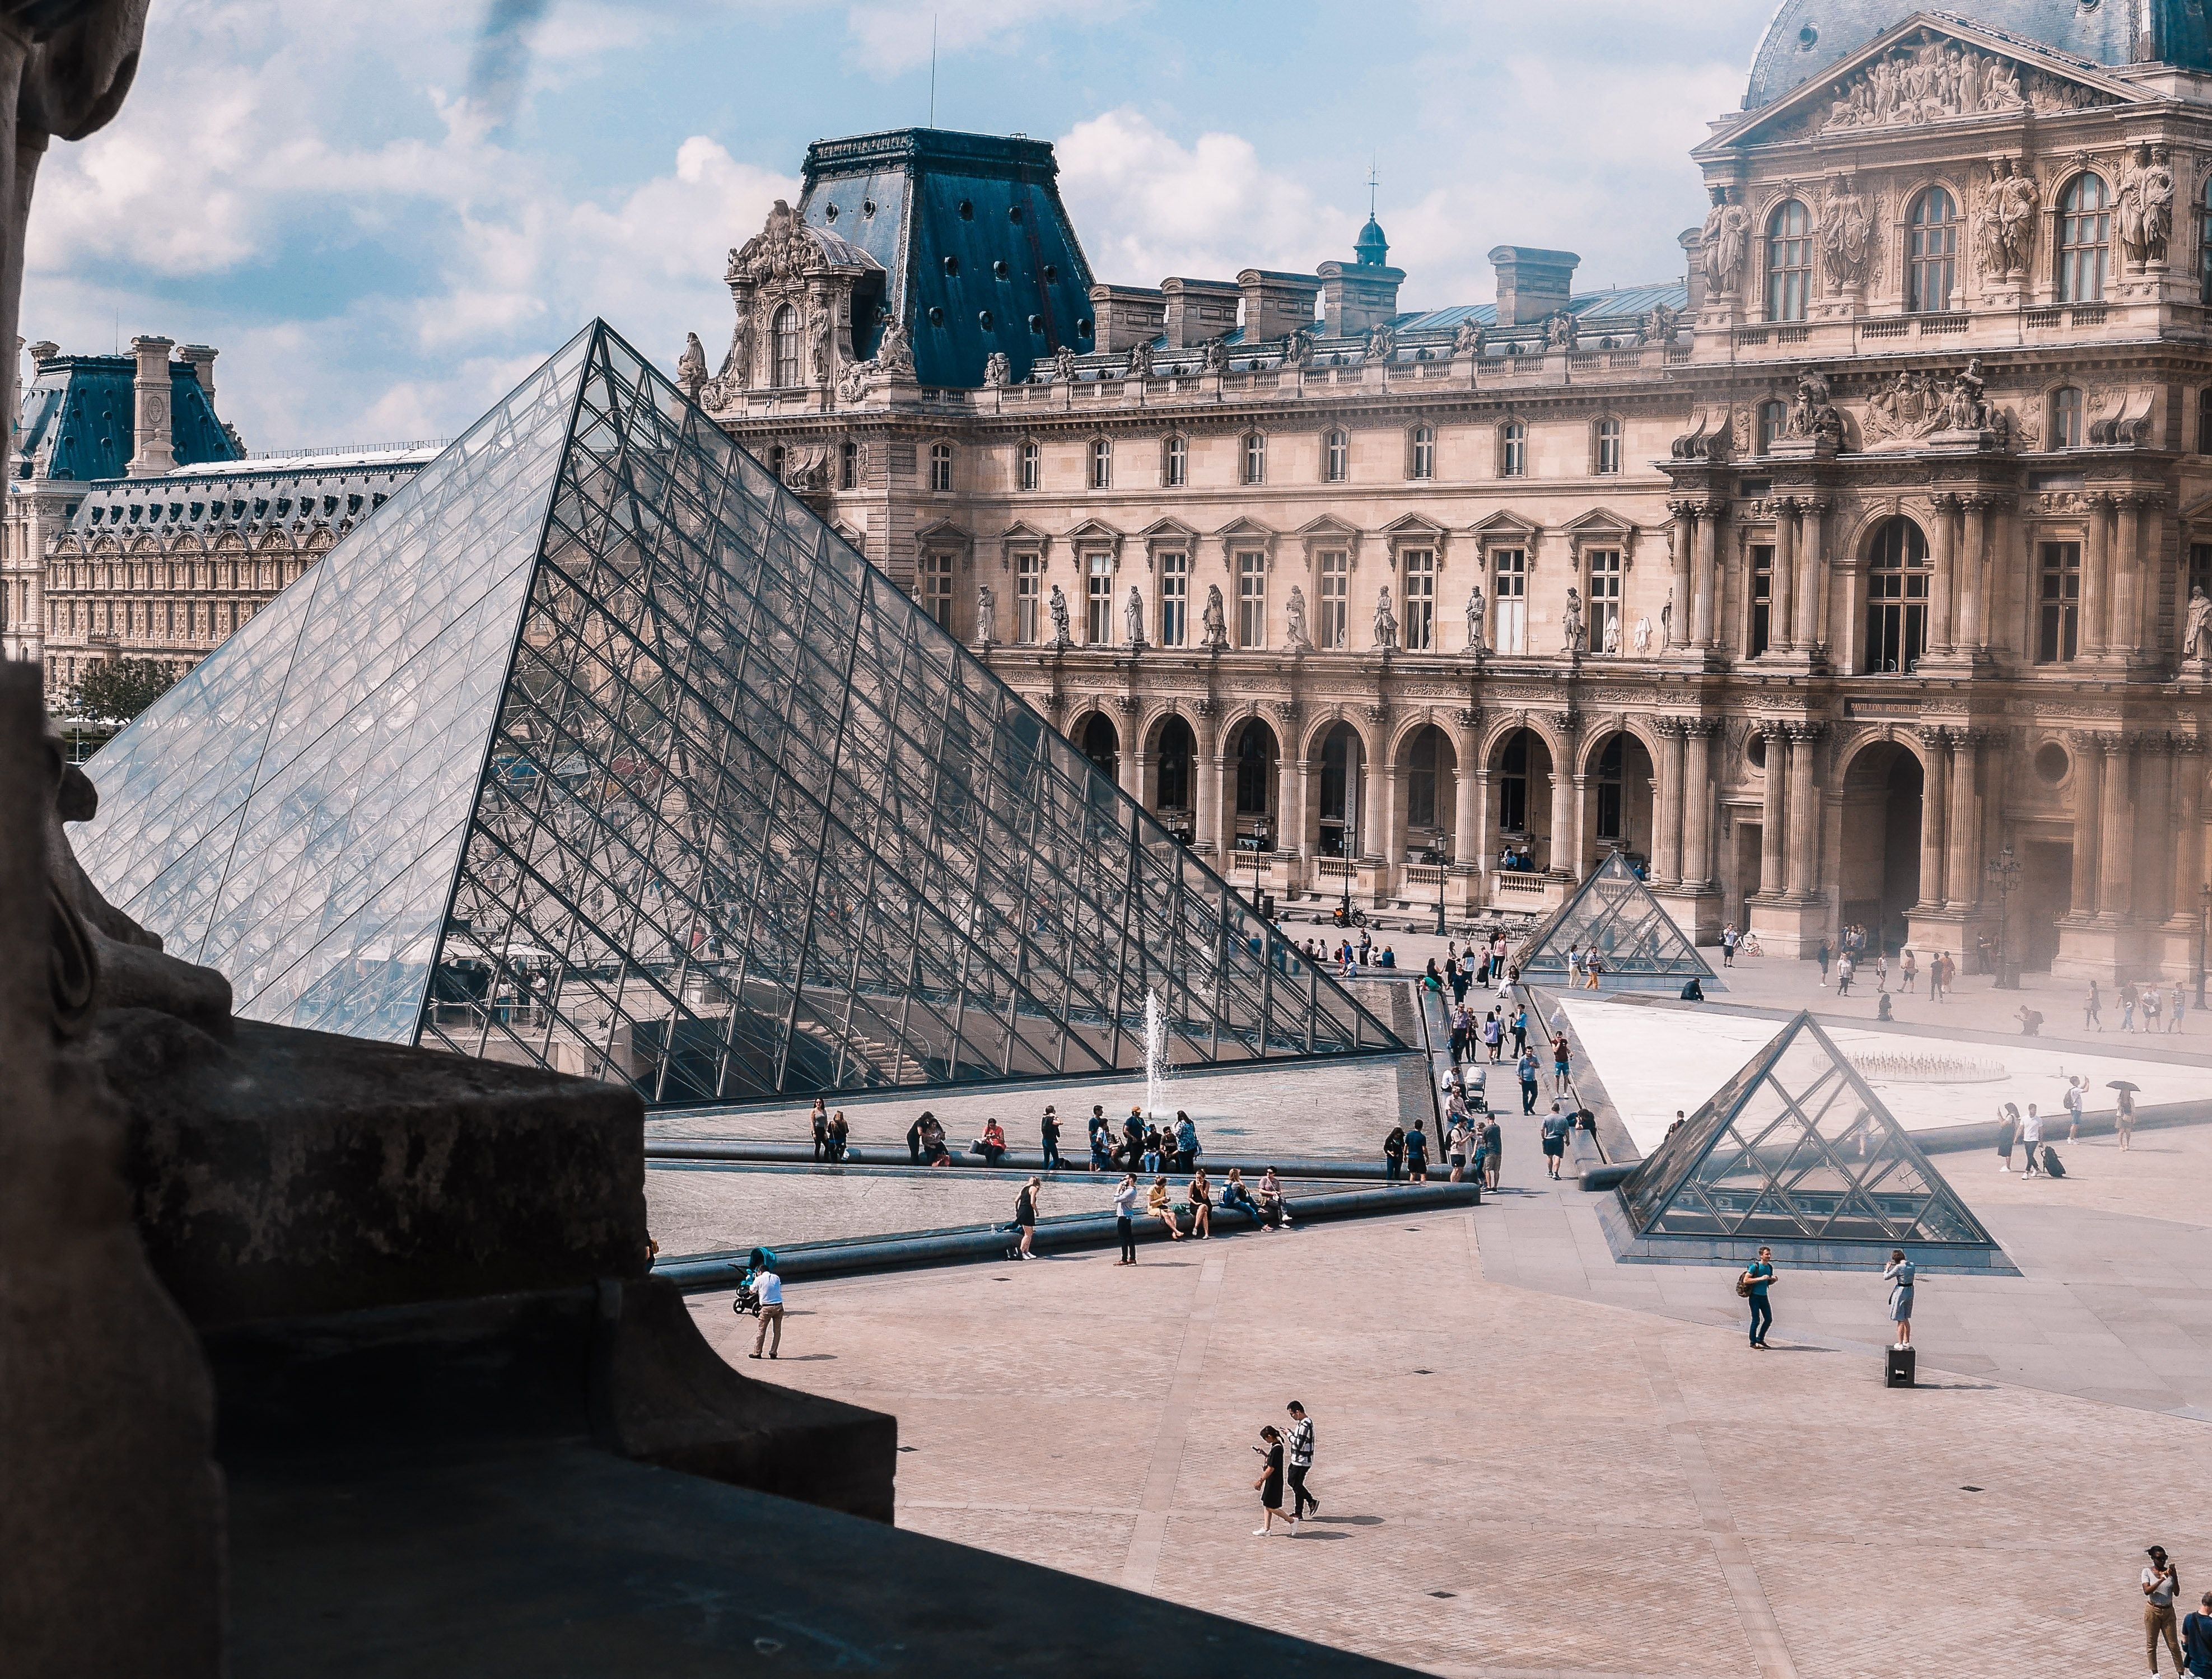 photo-of-the-louvre-museum-in-paris-france-2675266.jpg